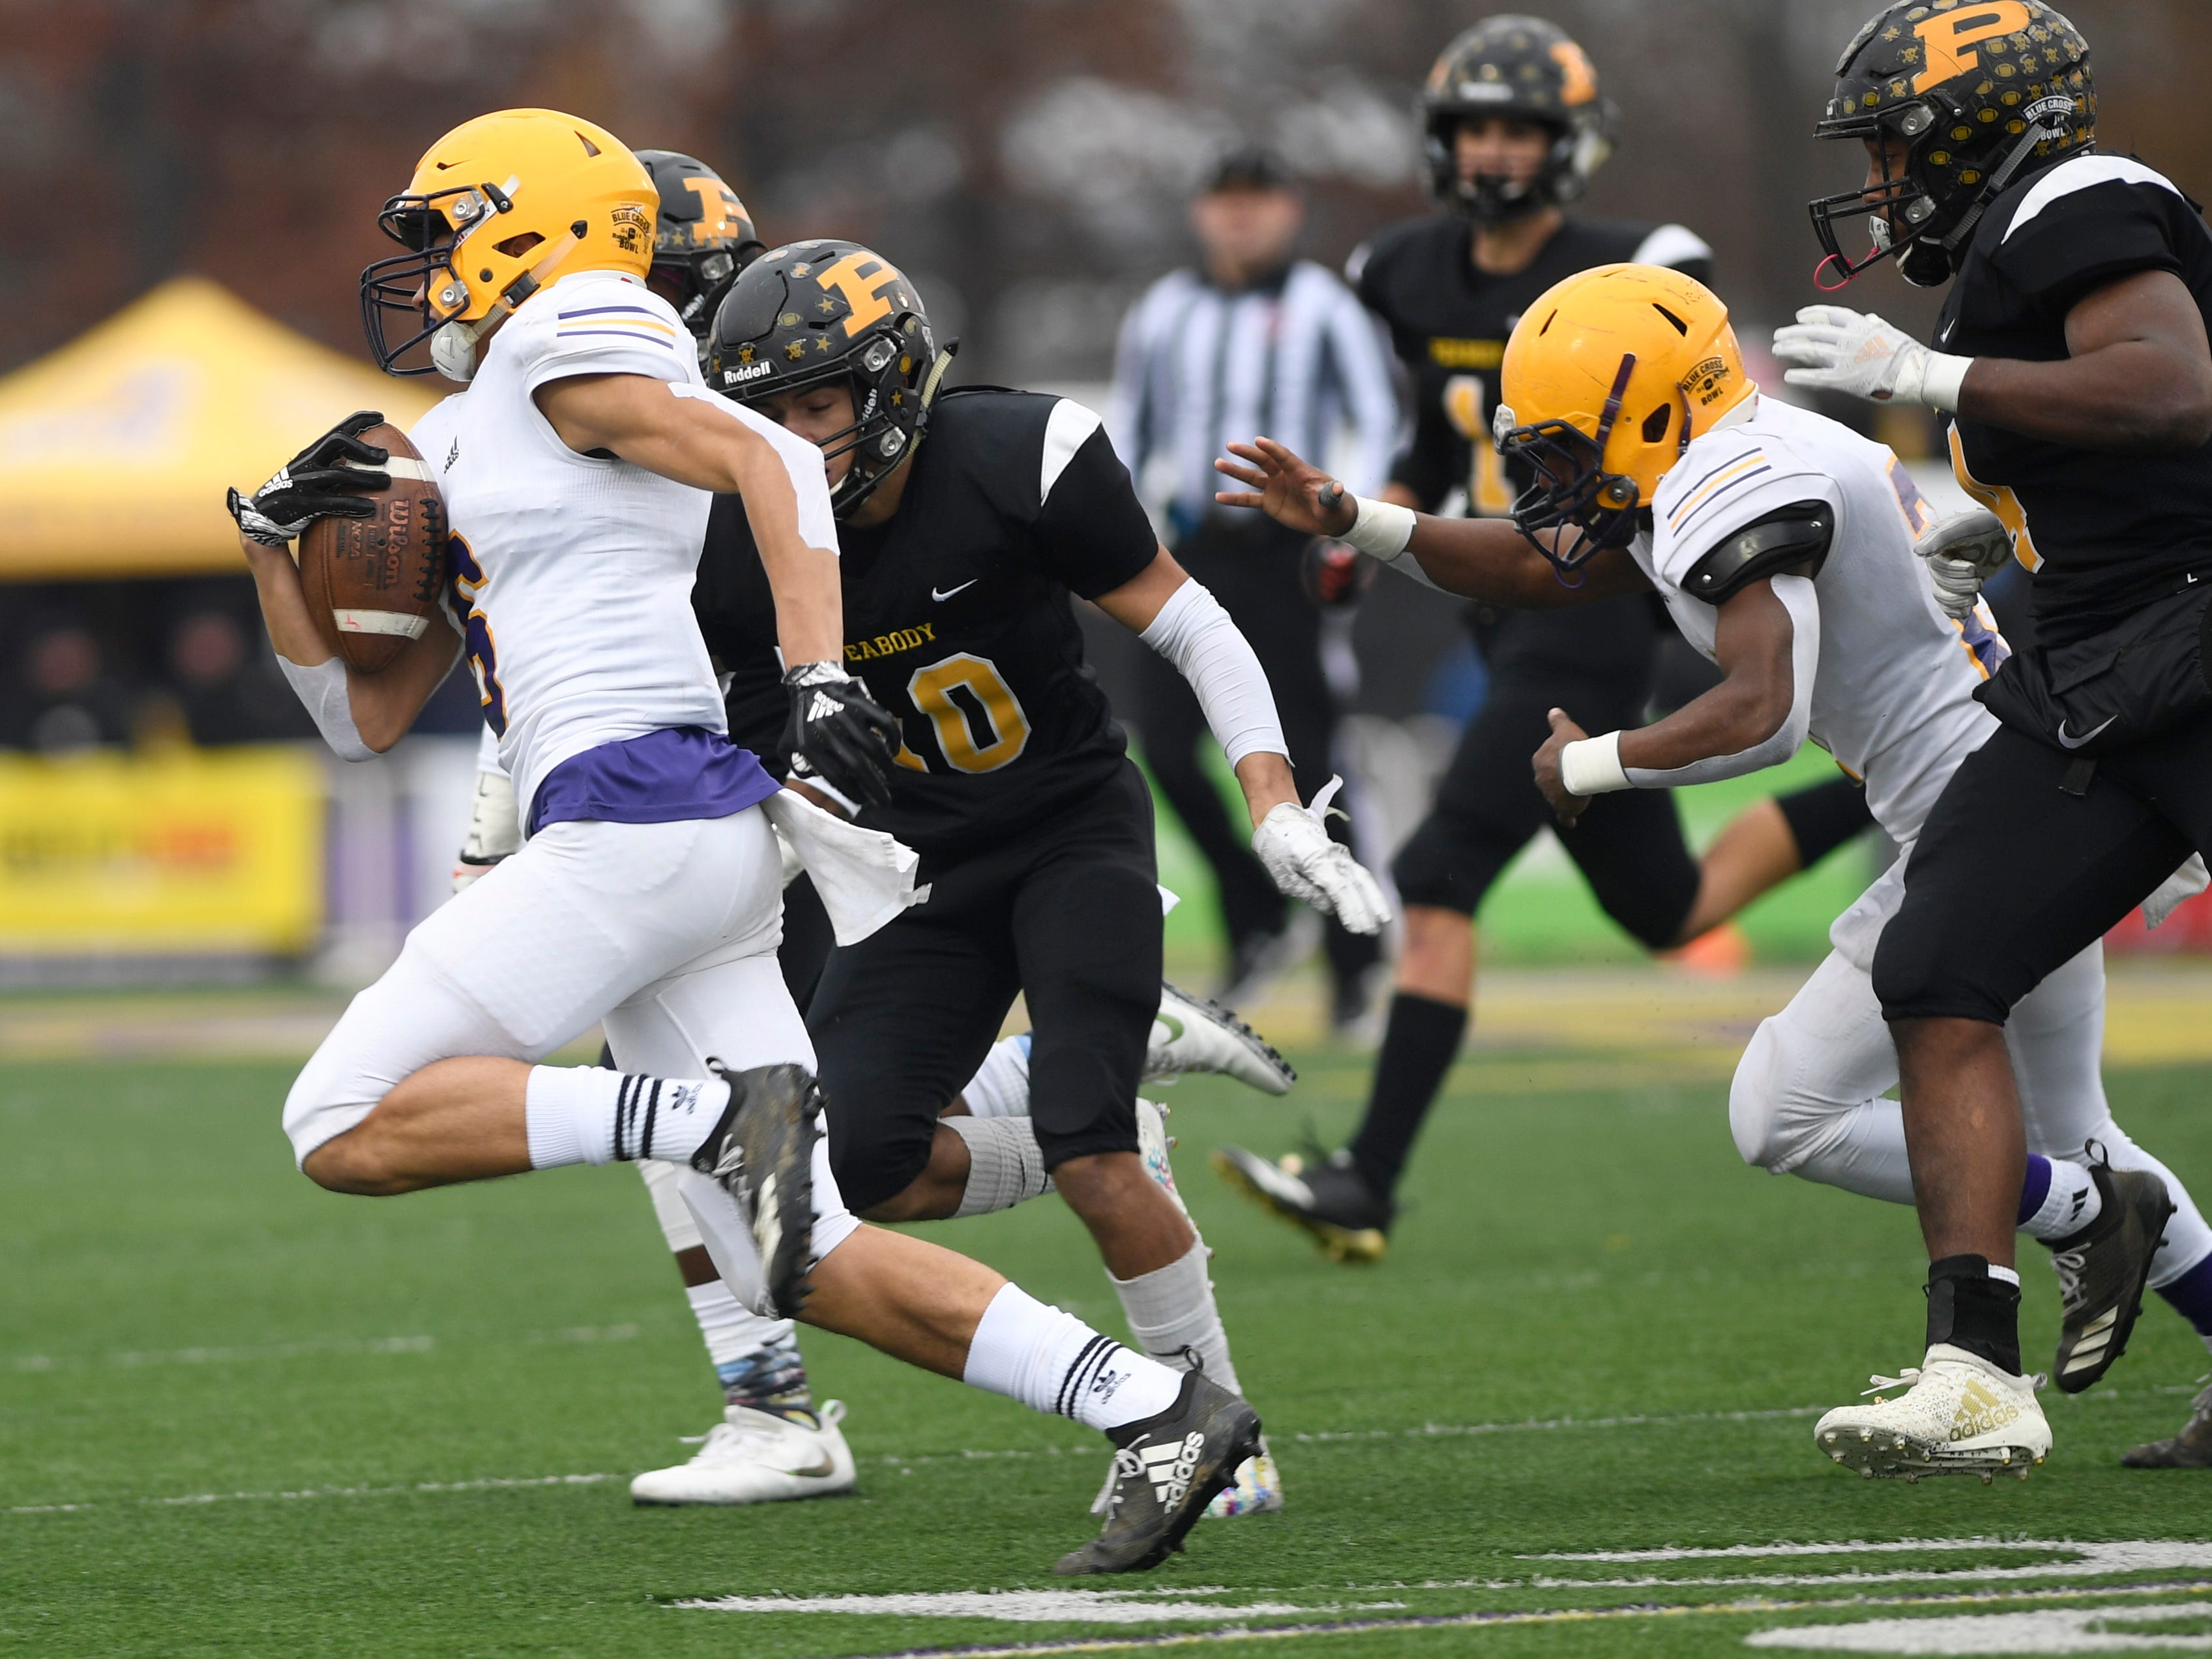 Trousdale's Jayden Hicks (6) takes off on a run in the second quarter during the Class 2A BlueCross Bowl state championship at Tennessee Tech's Tucker Stadium in Cookeville, Tenn., on Thursday, Nov. 29, 2018.